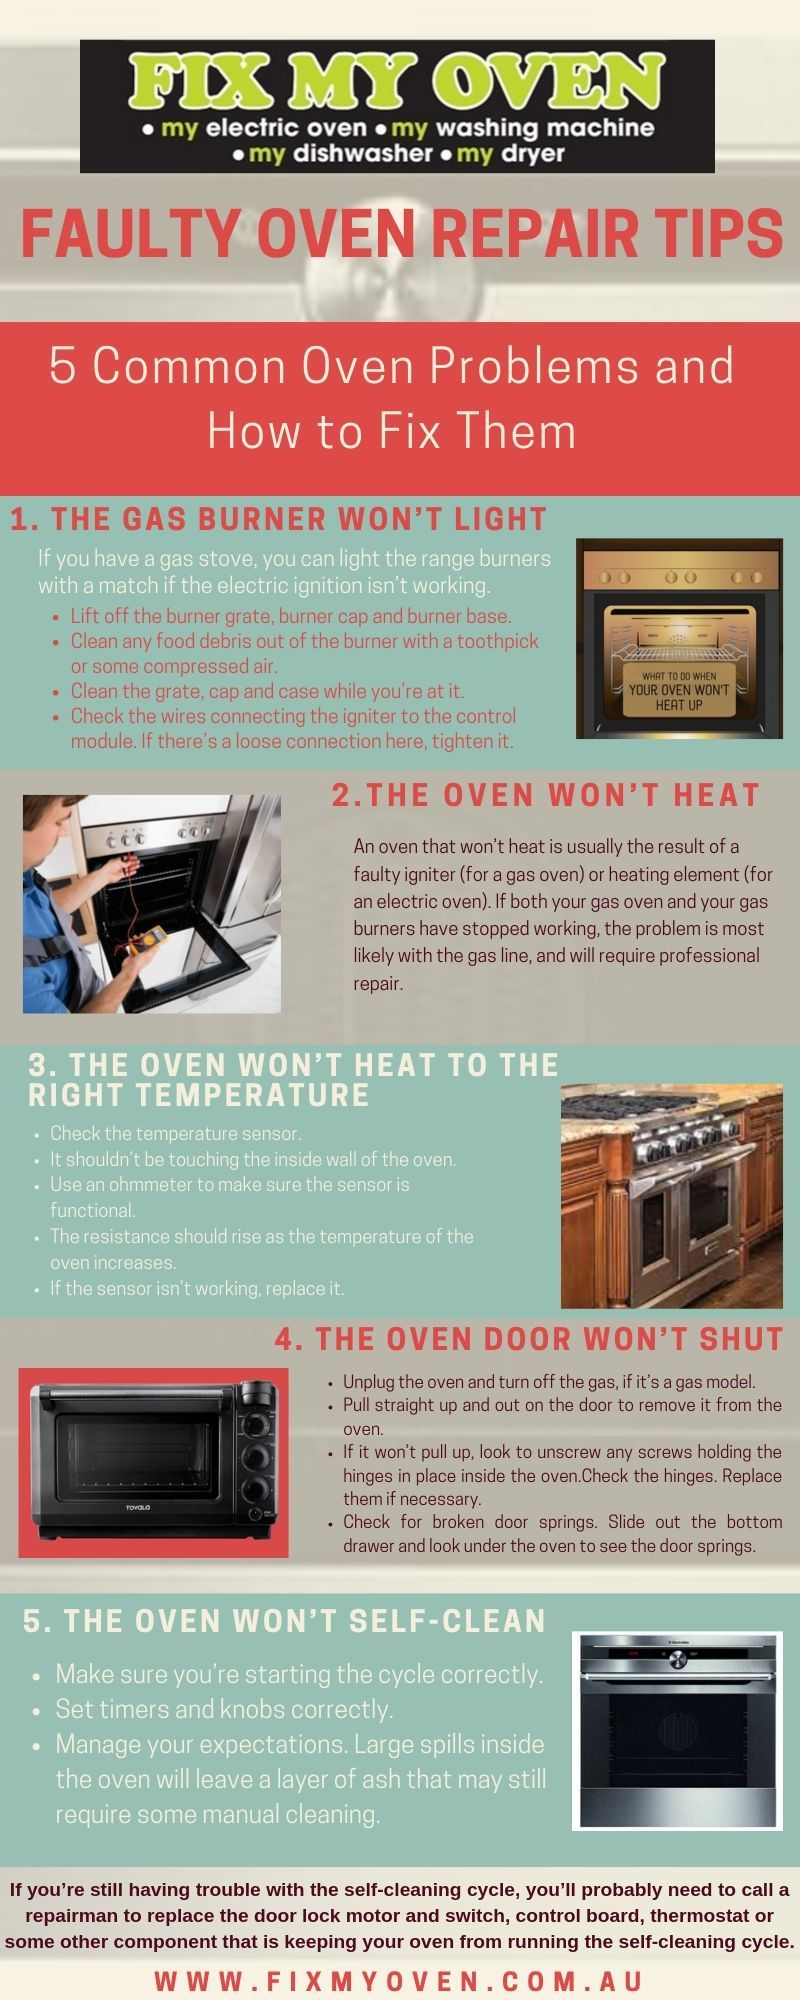 Know how to fix a faulty oven with few simple step. from a guide given in  info graphic By Fix My Oven. A leading bra…   Oven repair, Repair, Electric  oven